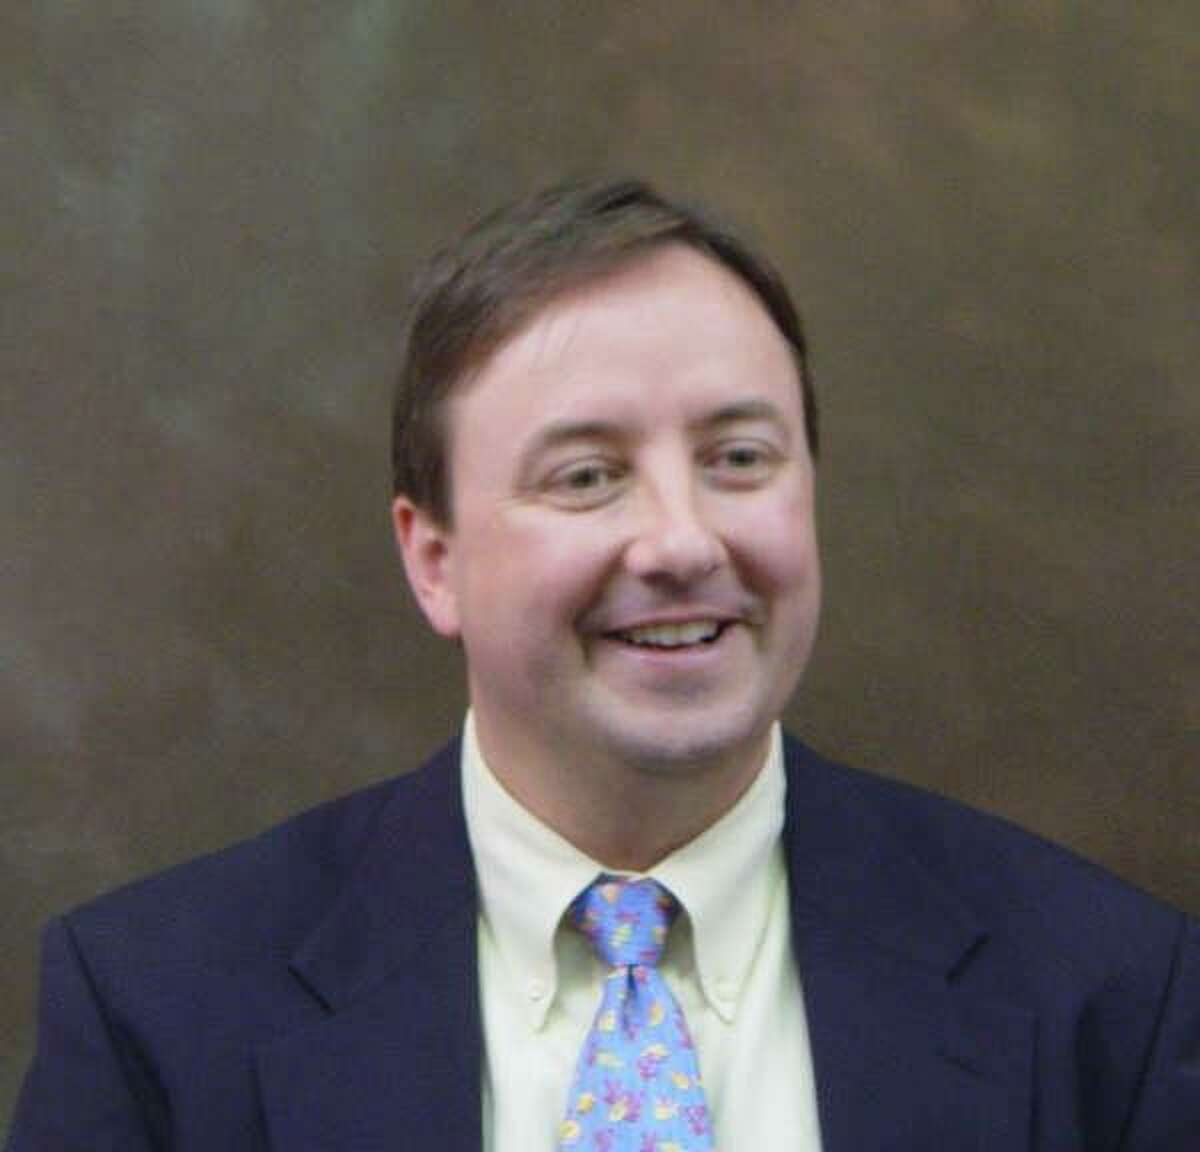 Michael M. Parker has been selected as the next judge for the U.S. Bankruptcy Court in San Antonio.